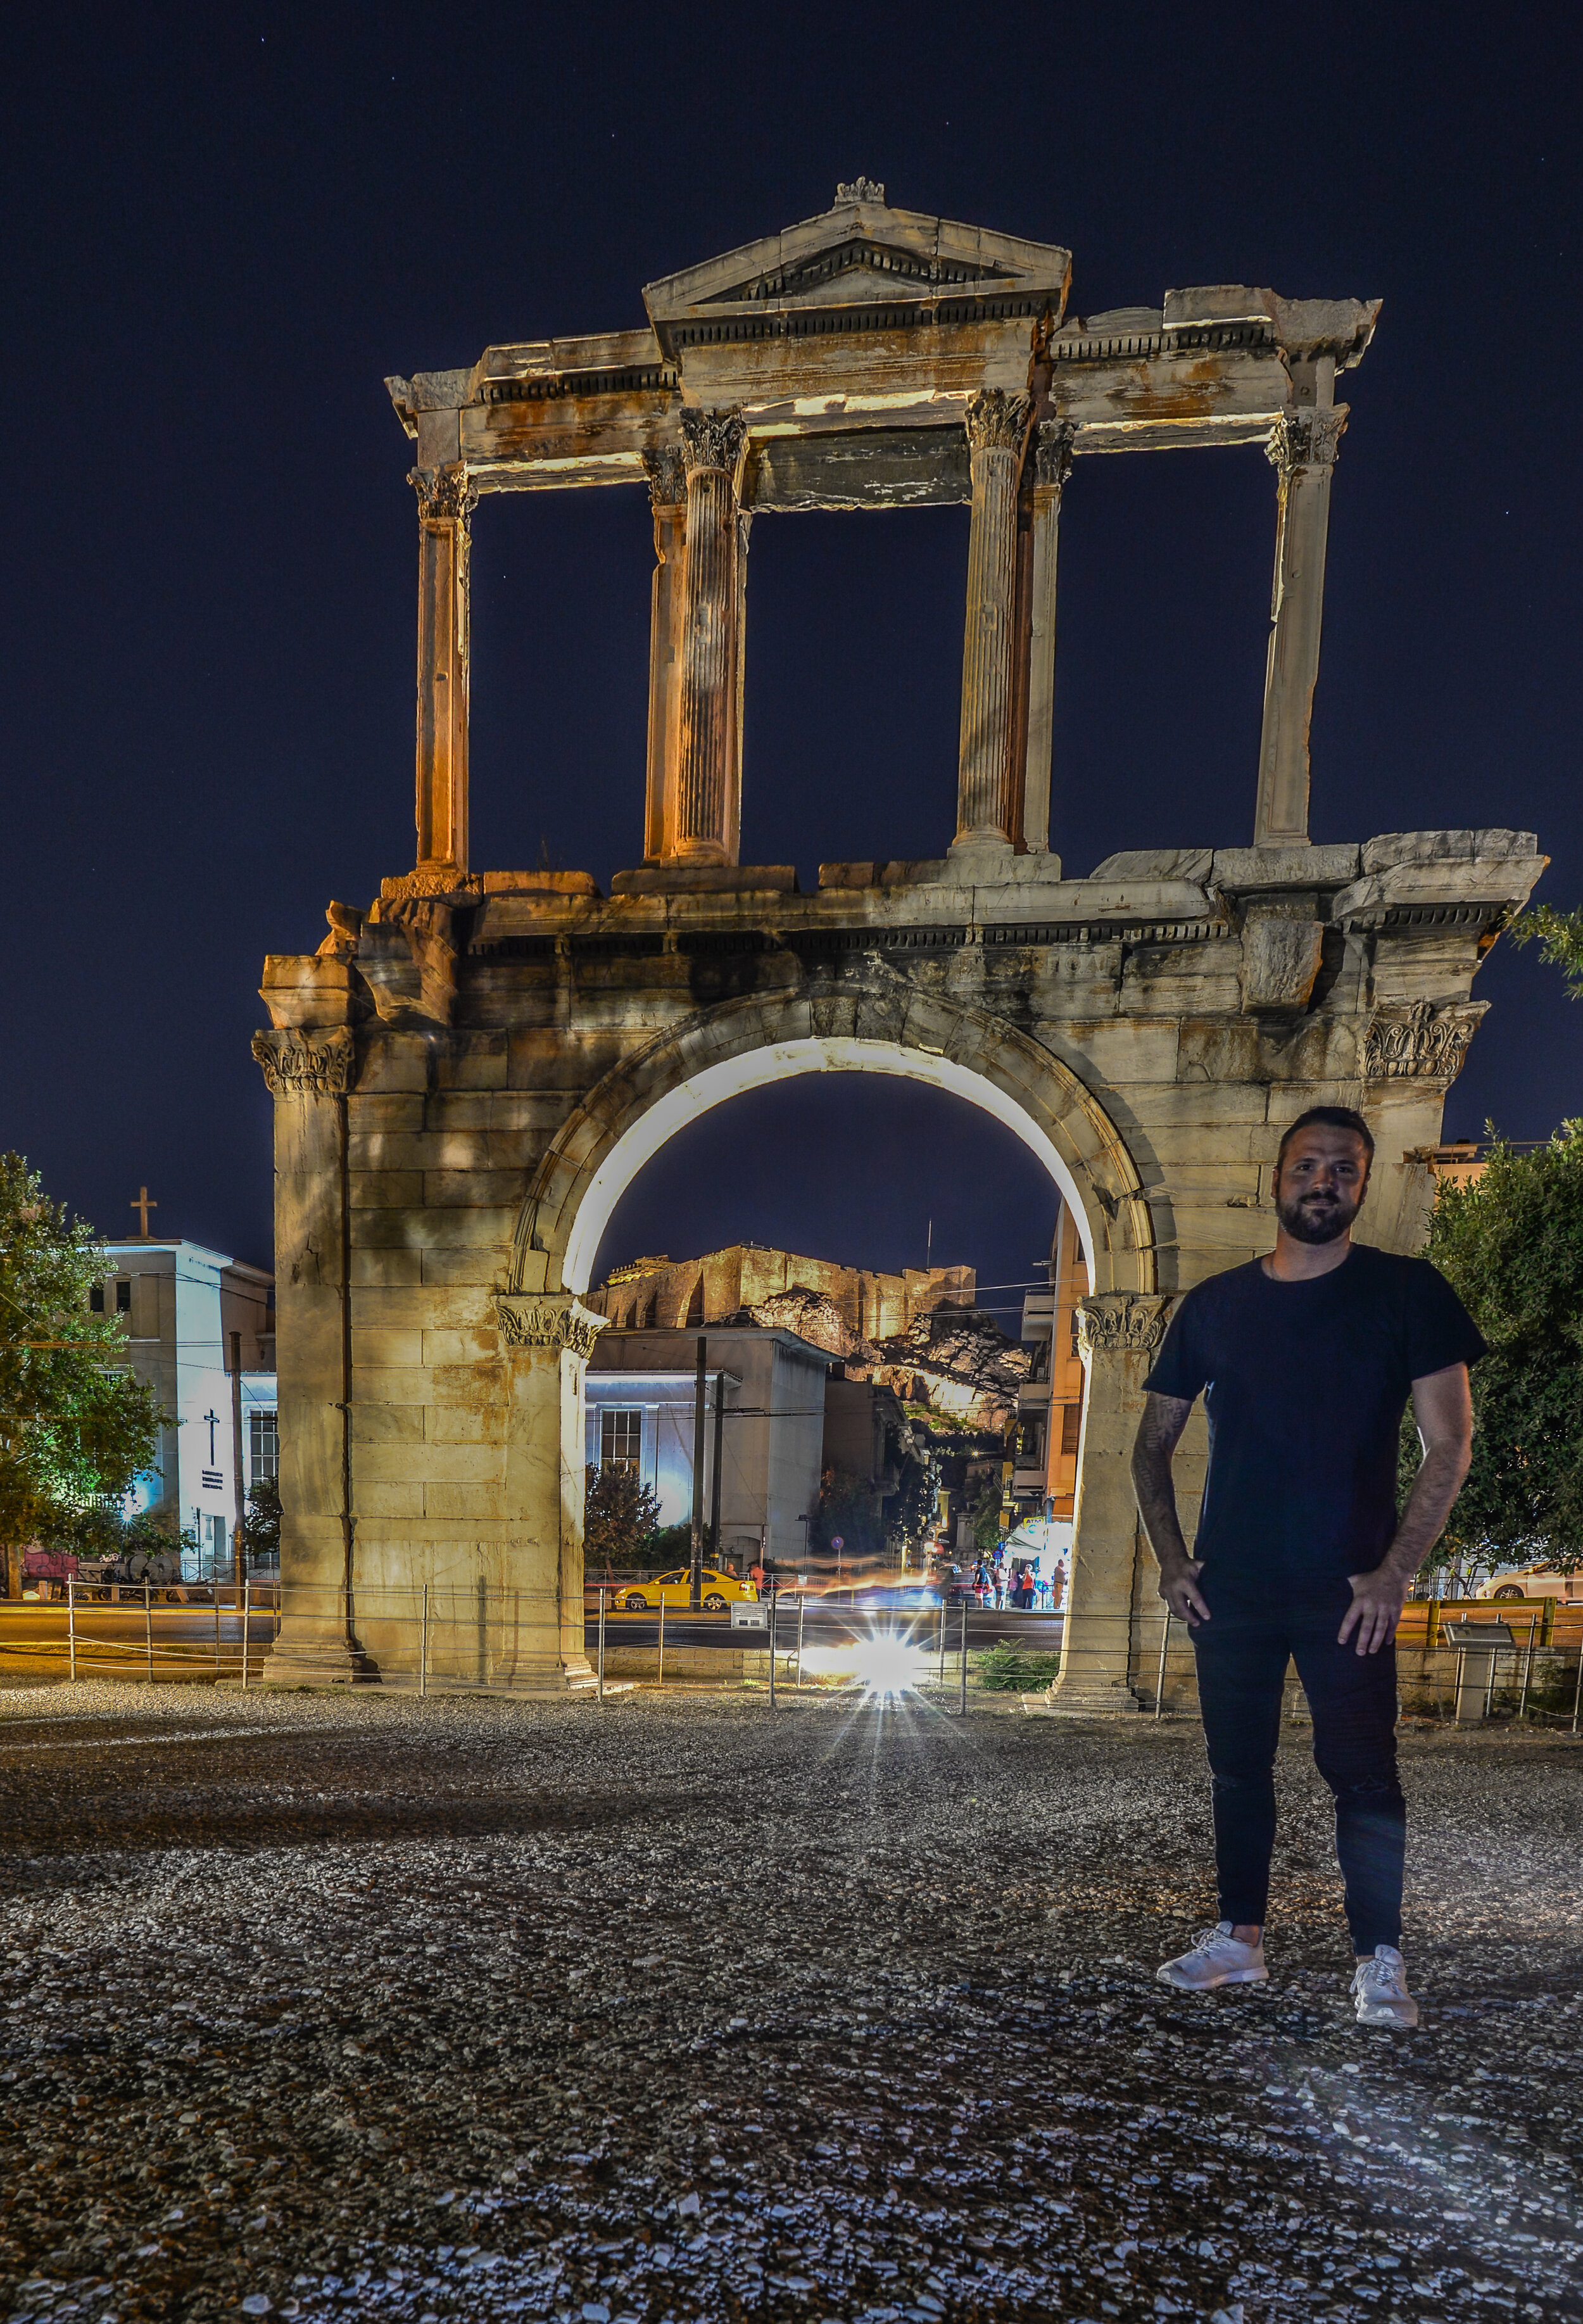 My first sight of the Parthenon under the Hadrian gate